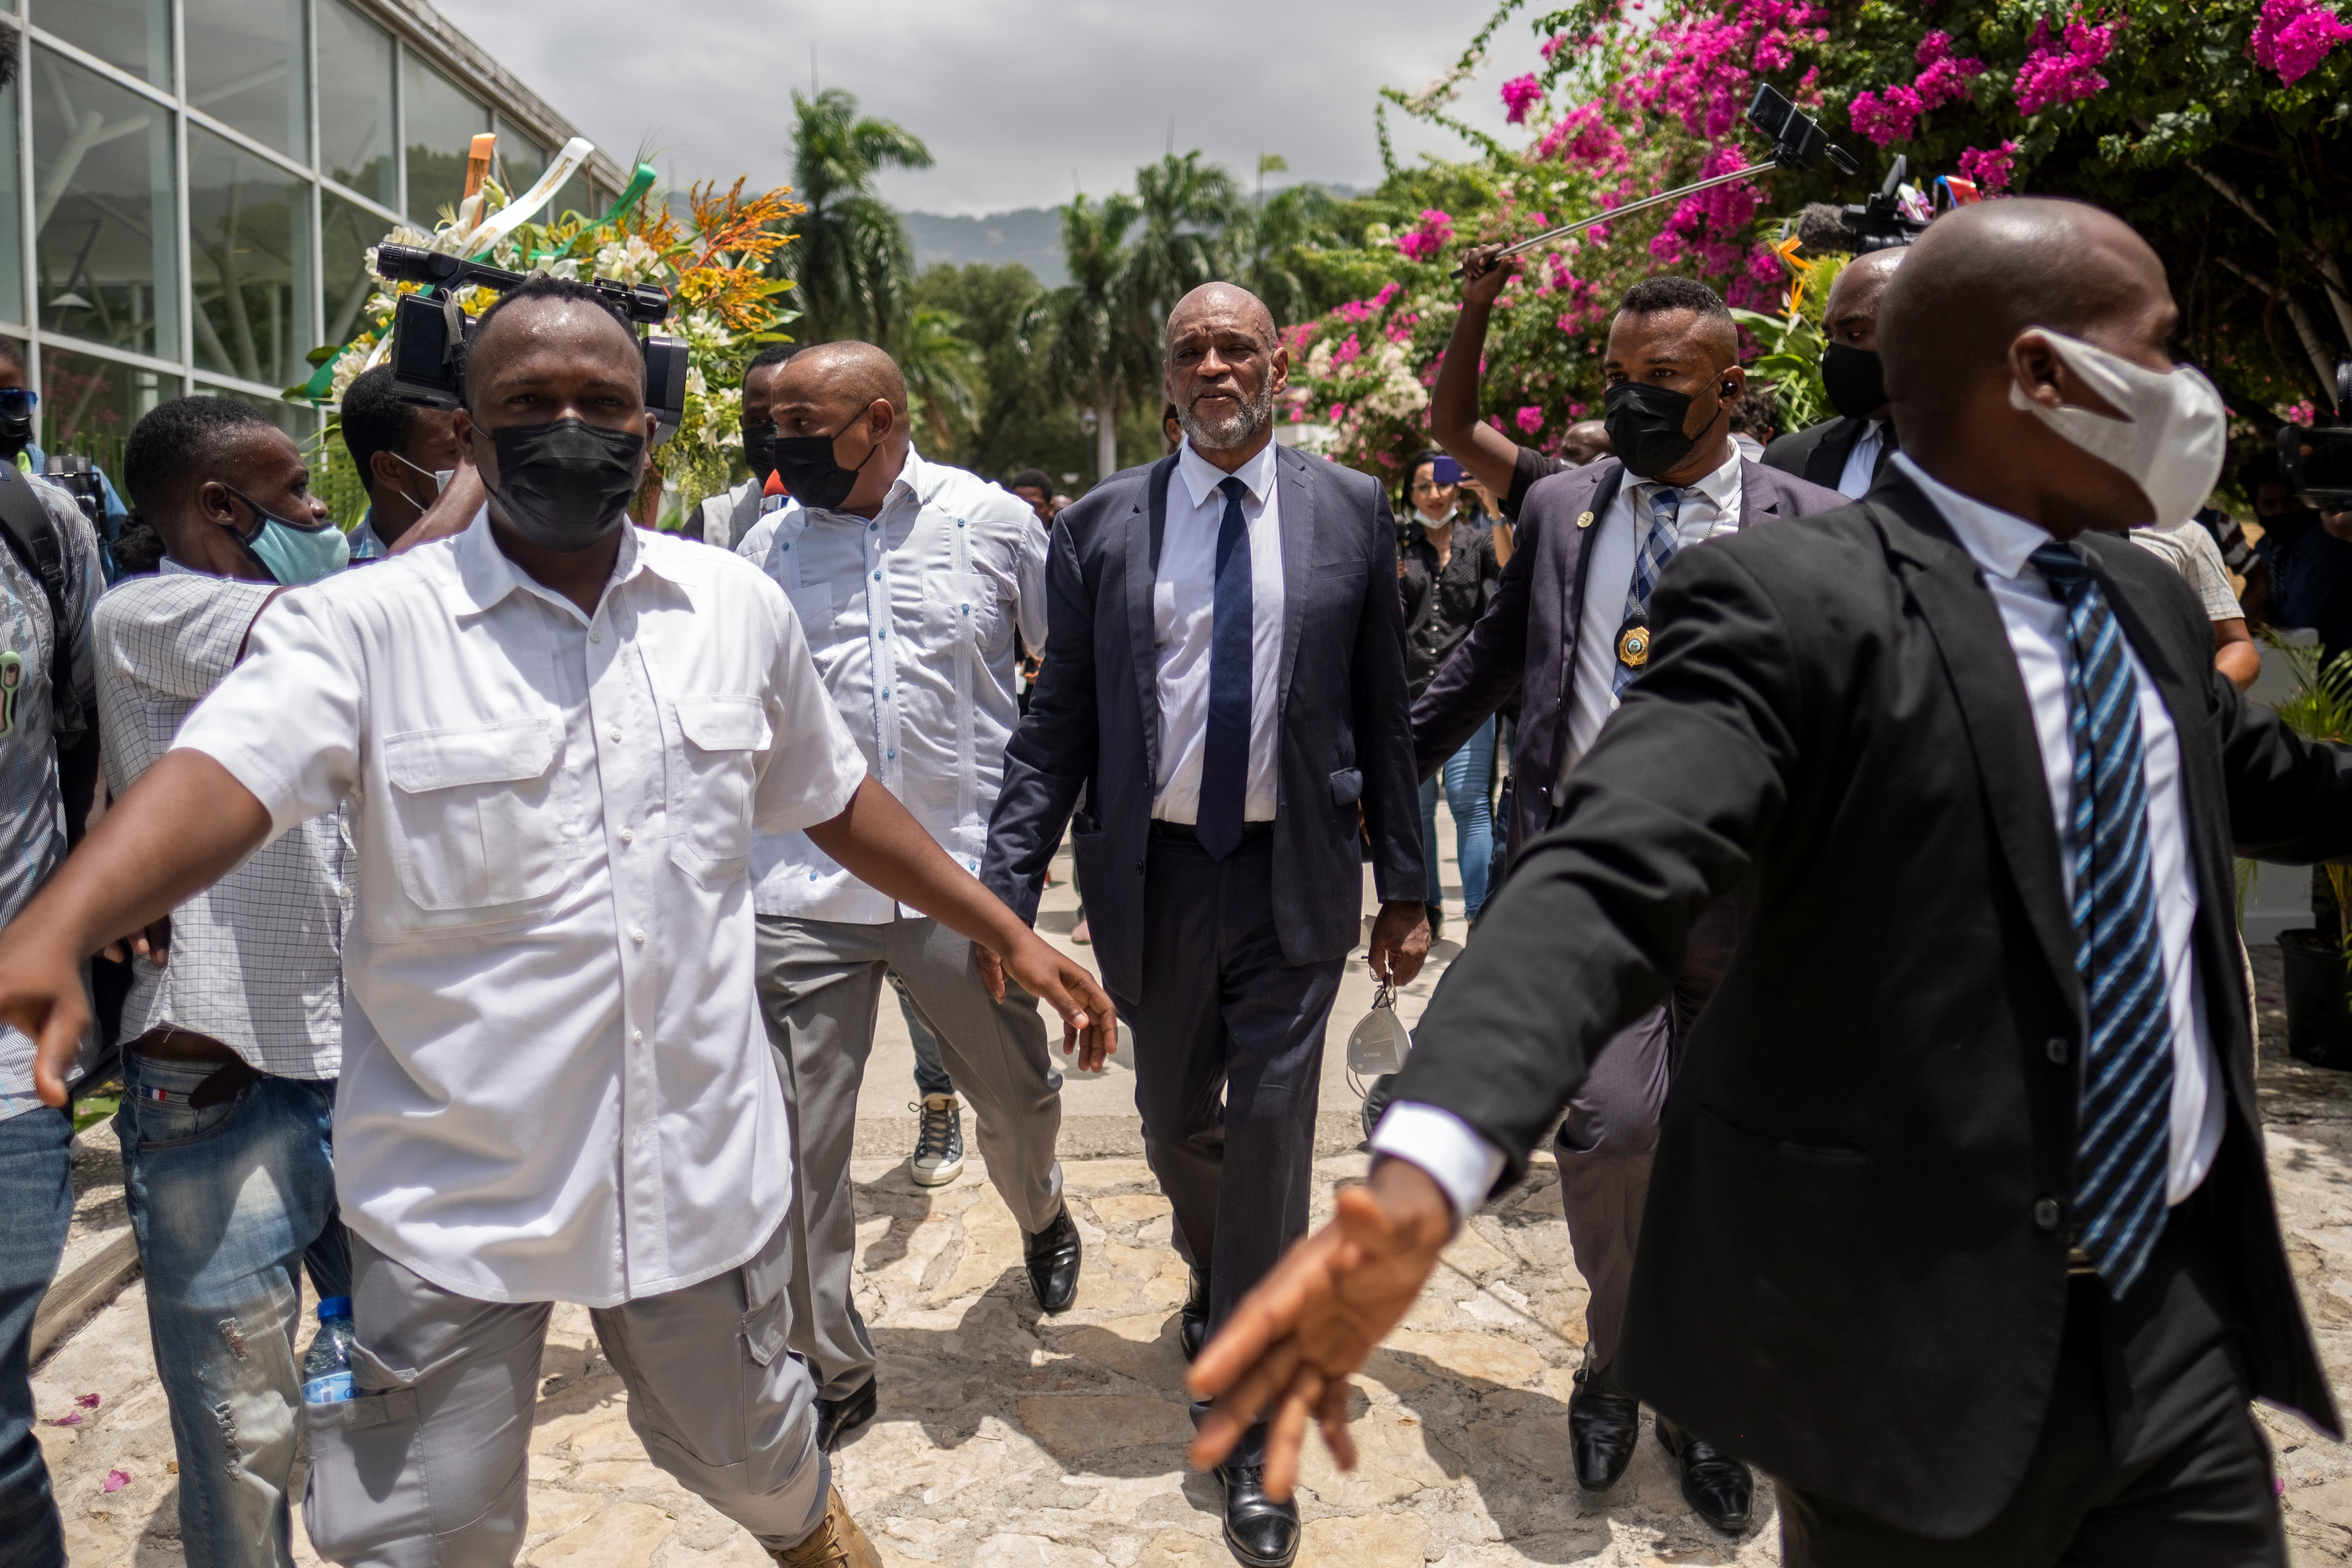 Haitian designated Prime Minister Ariel Henry arrives at a ceremony in the National Pantheon Museum in honor of late Haitian President Jovenel Moise in Port-au-Prince, Haiti July 20, 2021. REUTERS/Ricardo Arduengo